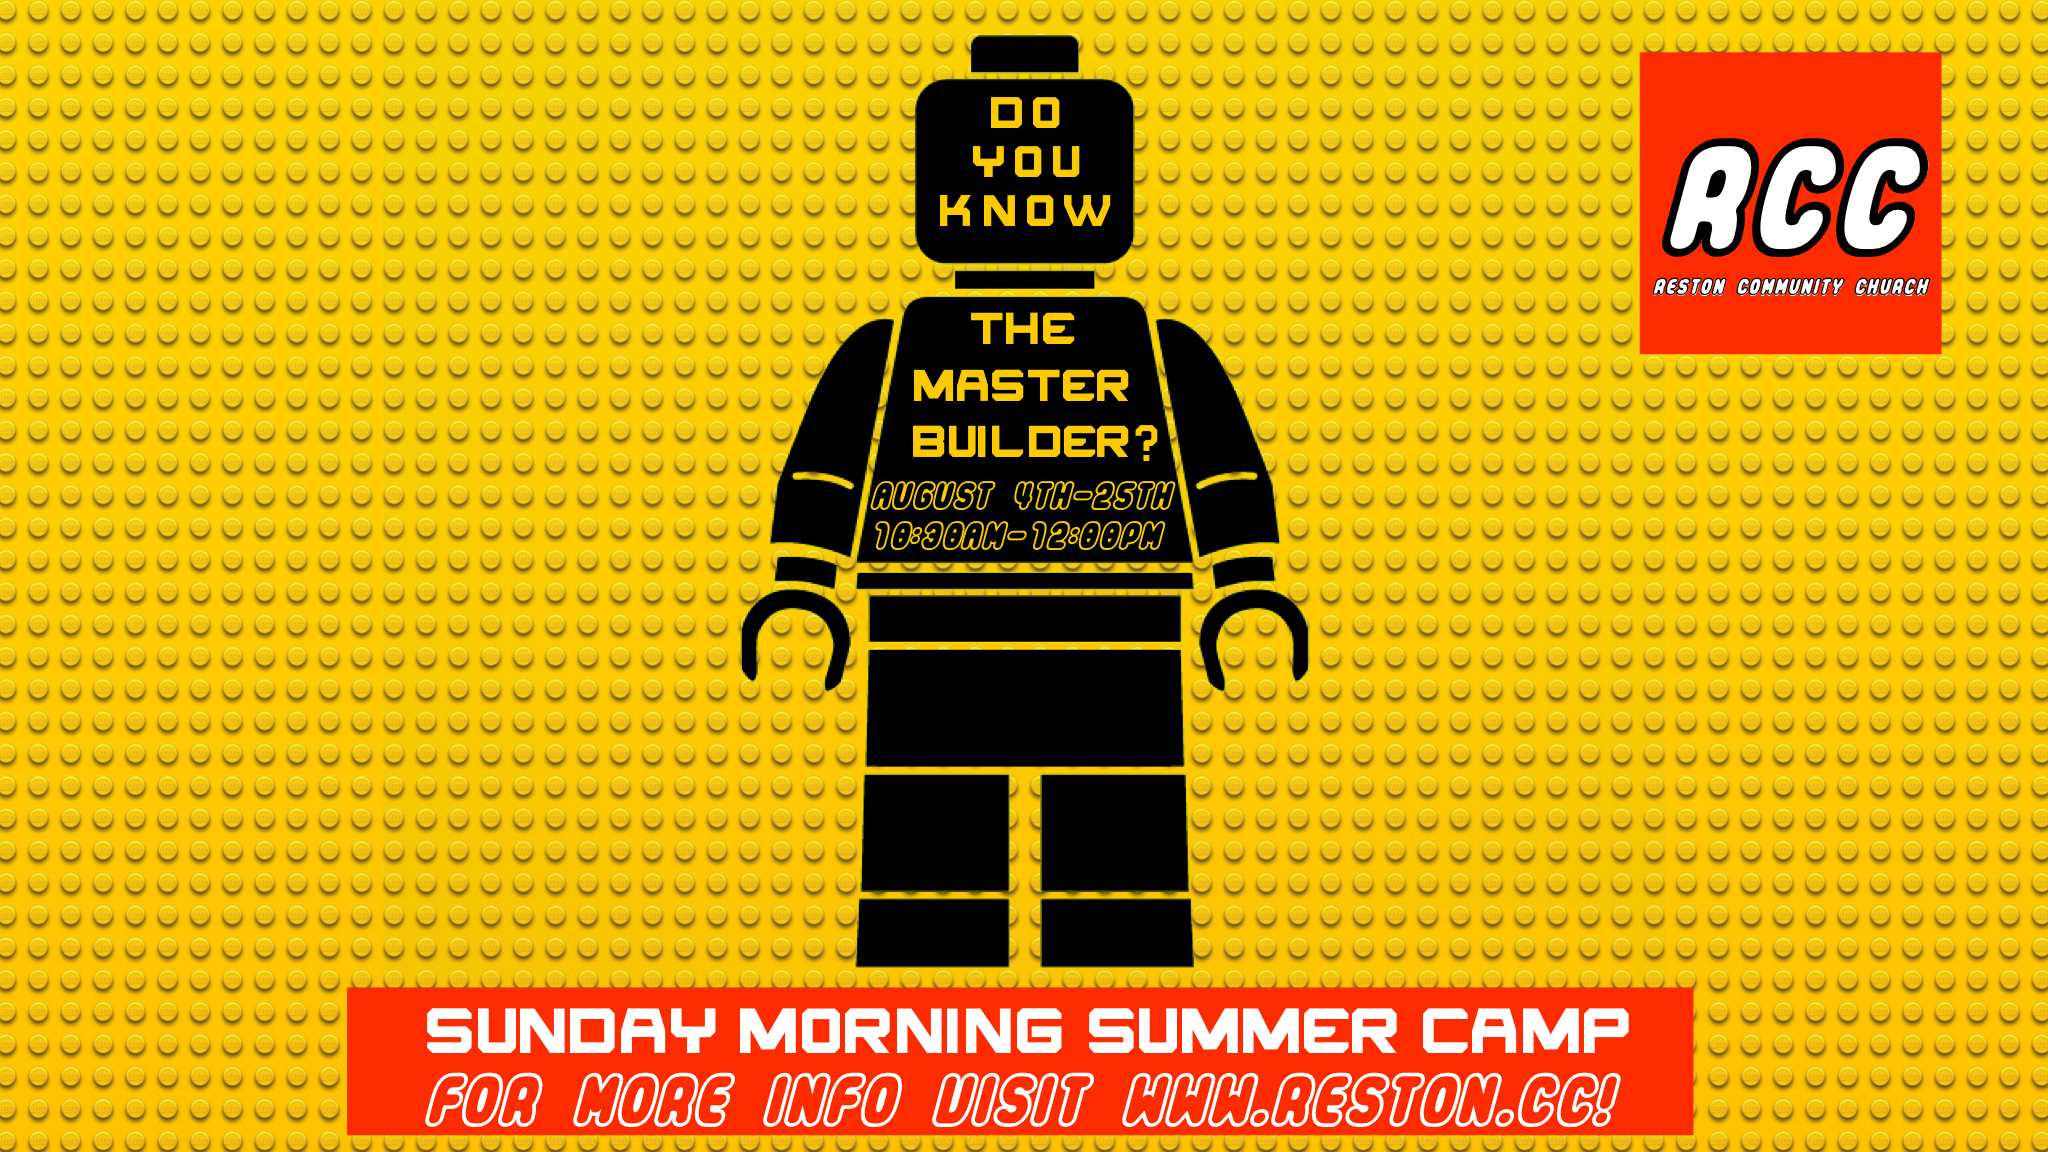 SUNDAY SUMMER CAMP image